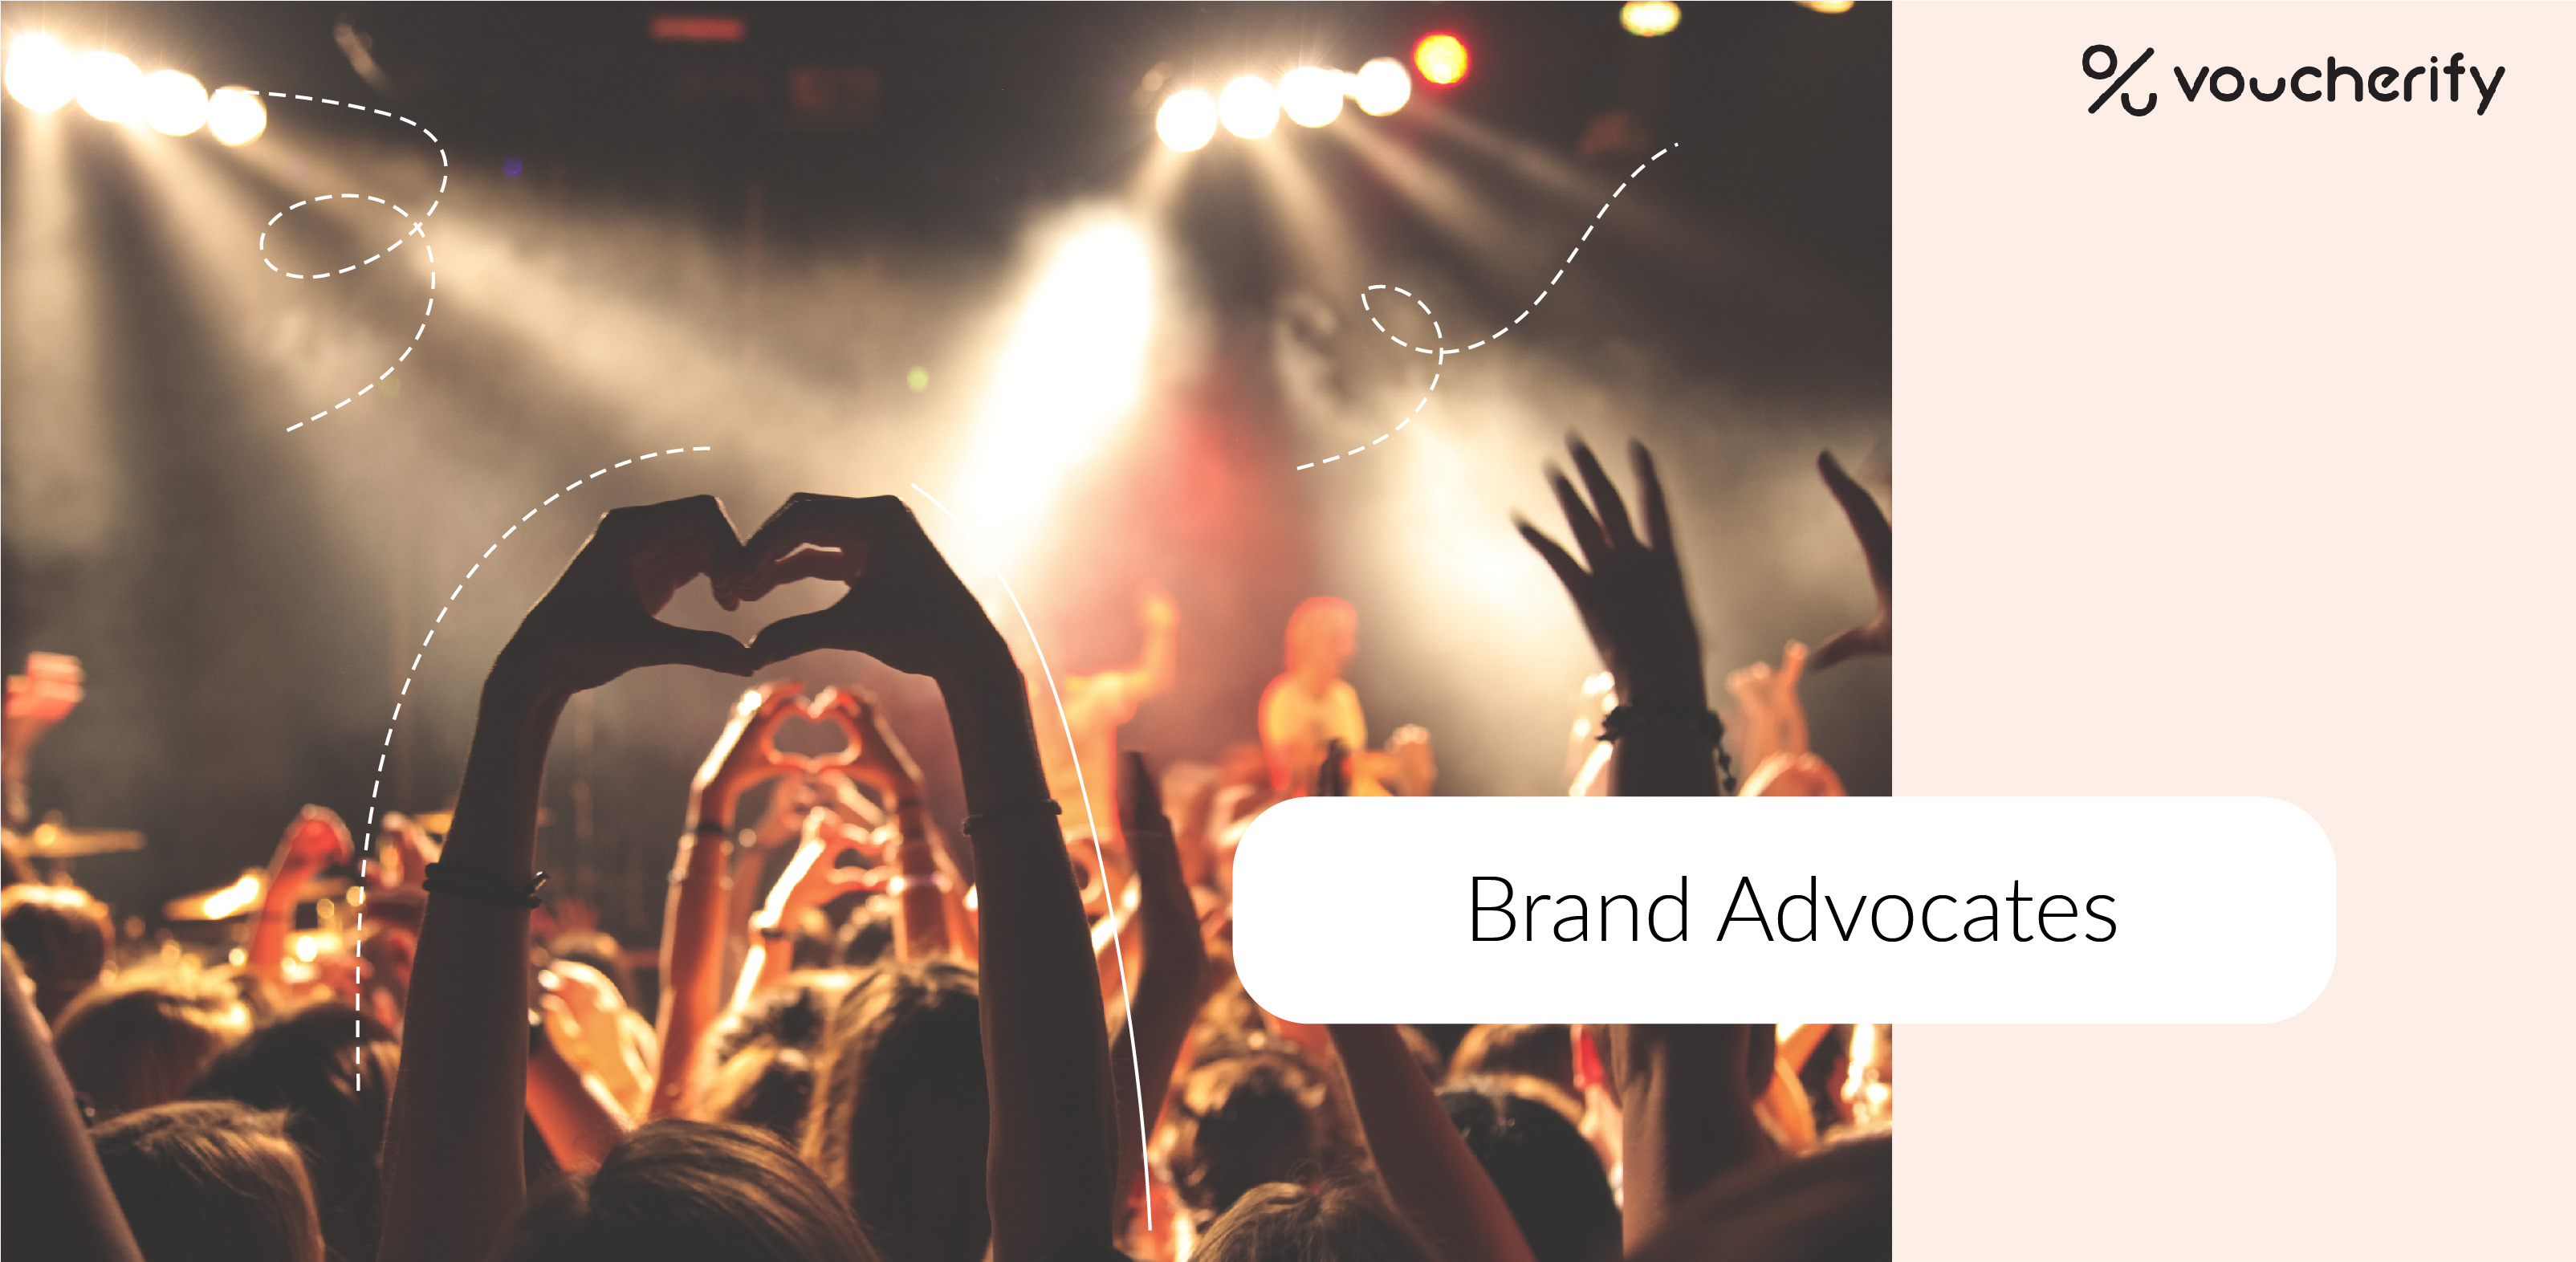 12 ways to boost brand advocacy and turn passing visitors into brand evangelists.